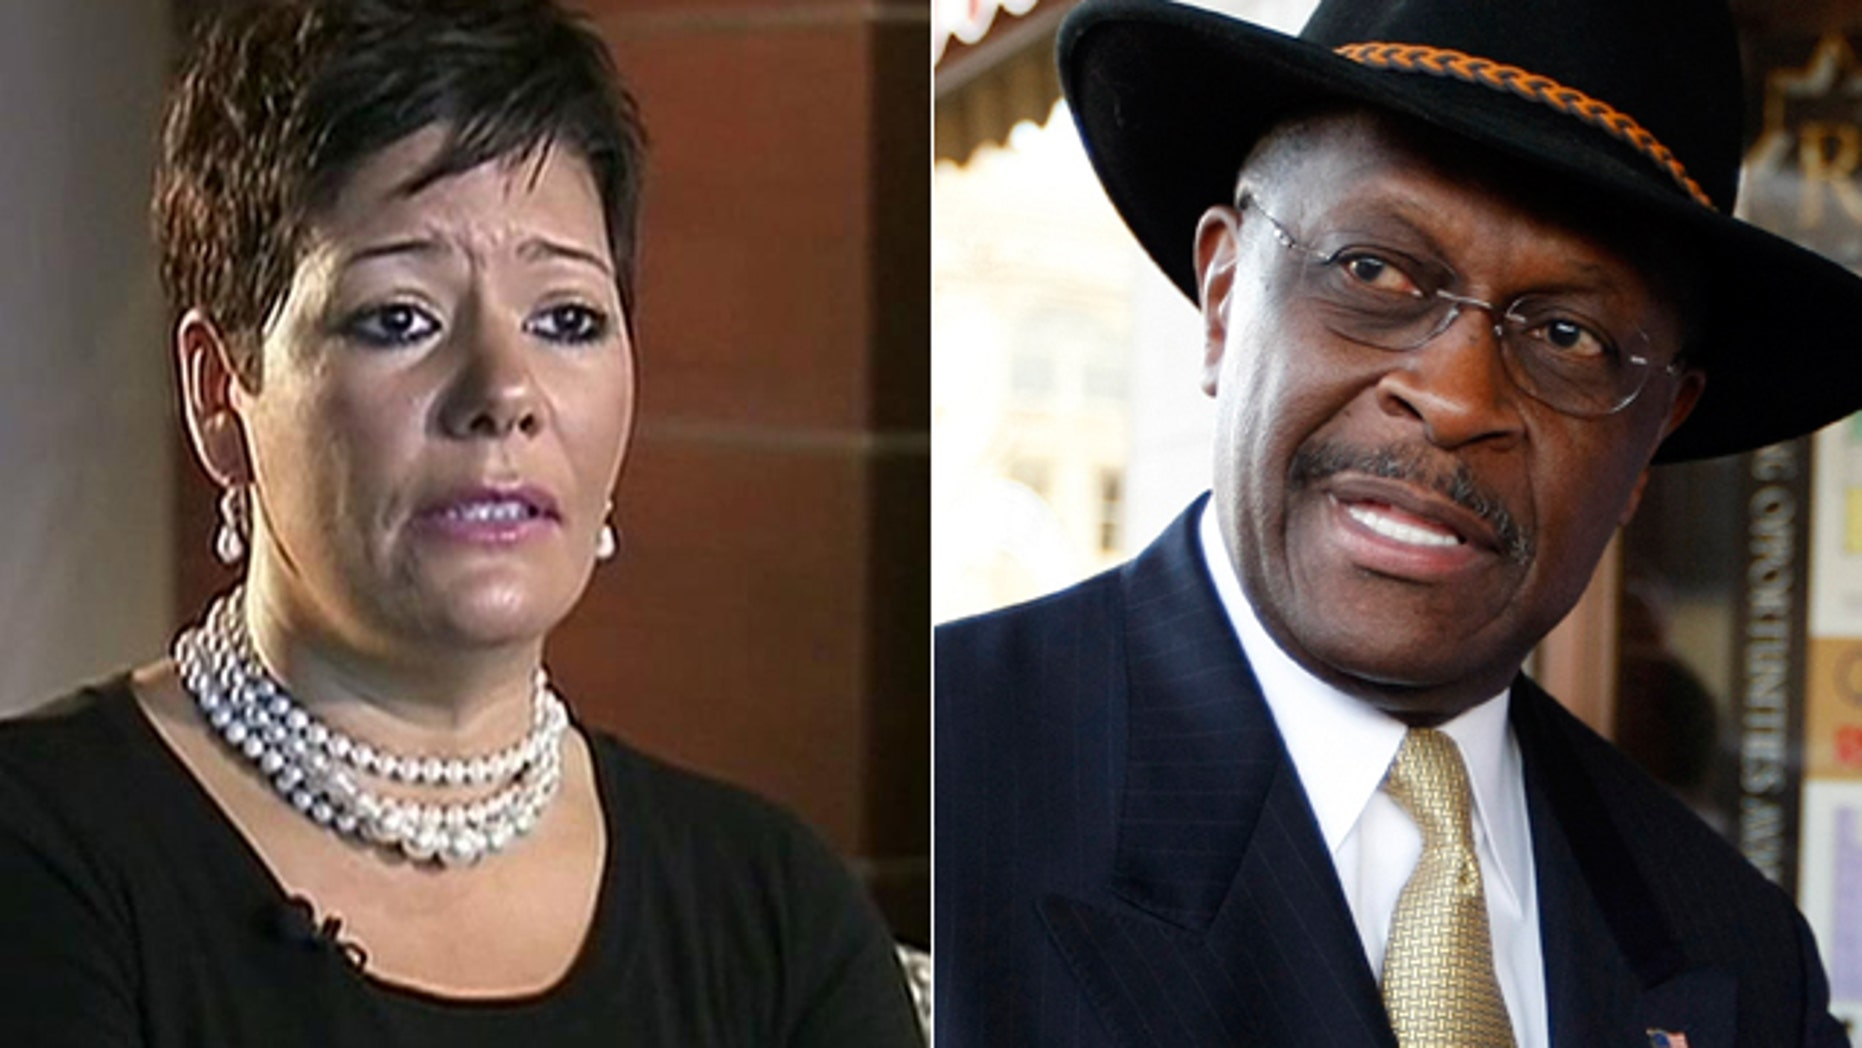 Atlanta businesswoman Ginger White says she had a 13-year affair with Republican presidential candidate Herman Cain, a claim Cain denies.